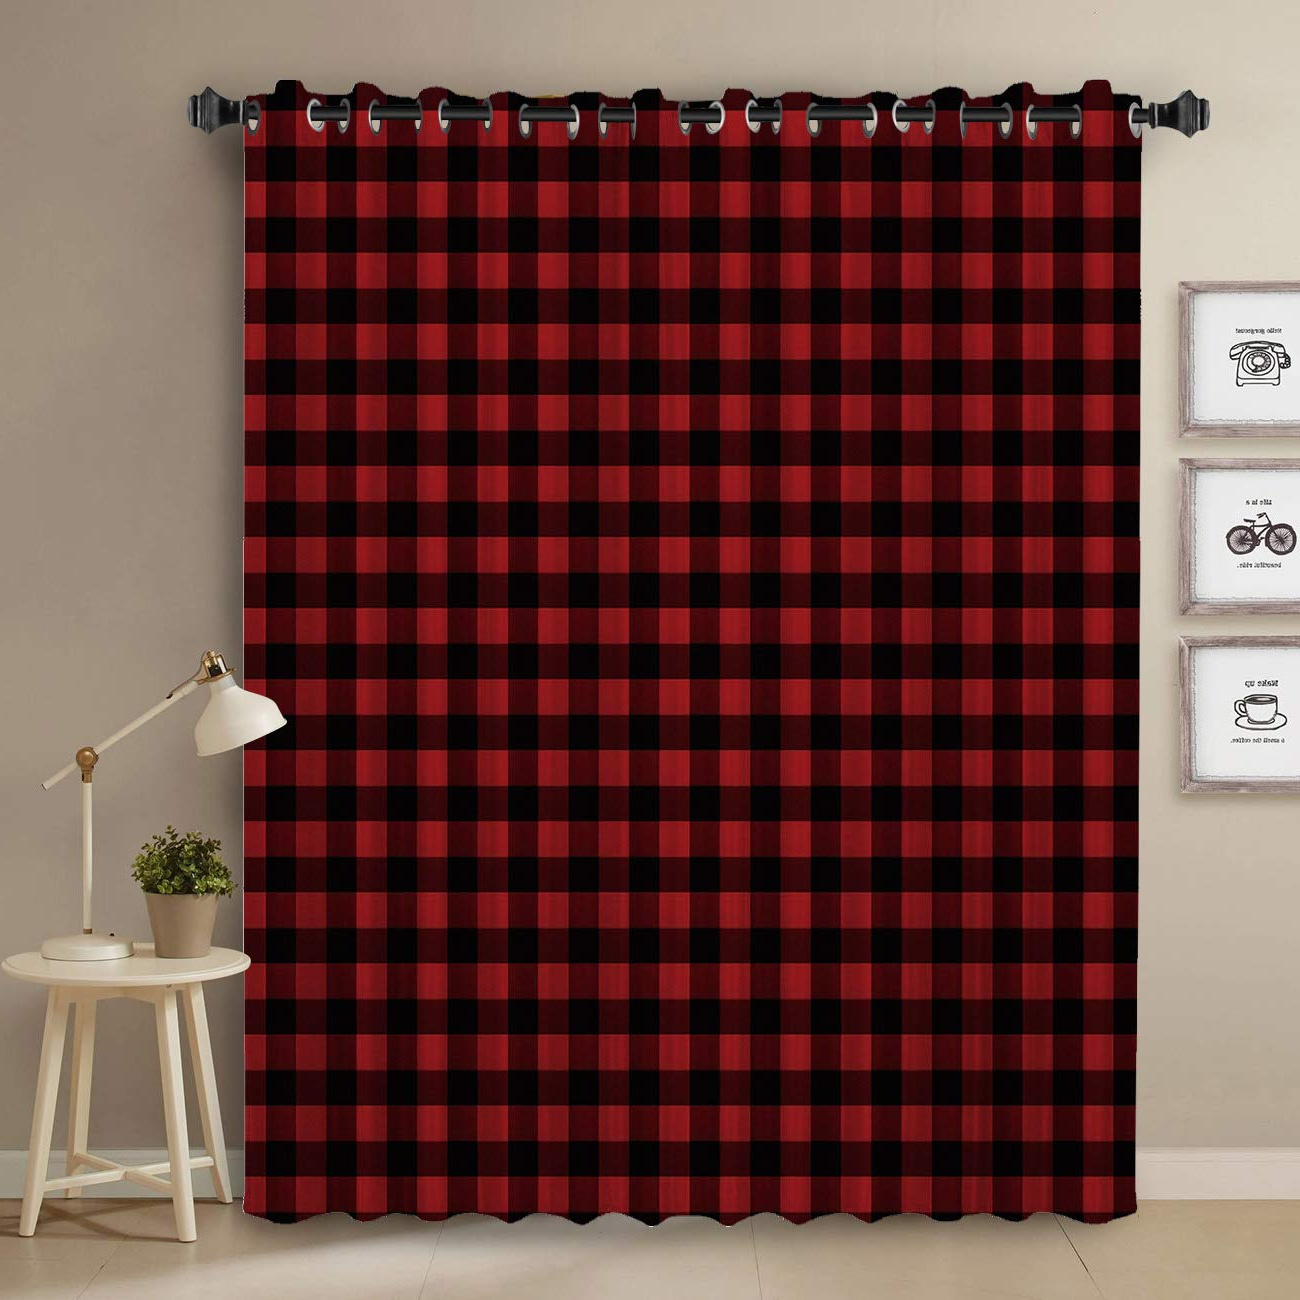 Red Rustic Kitchen Curtains With Most Current Amazon: Anzona Rustic Red Black Buffalo Check Plaid Grid (View 8 of 20)